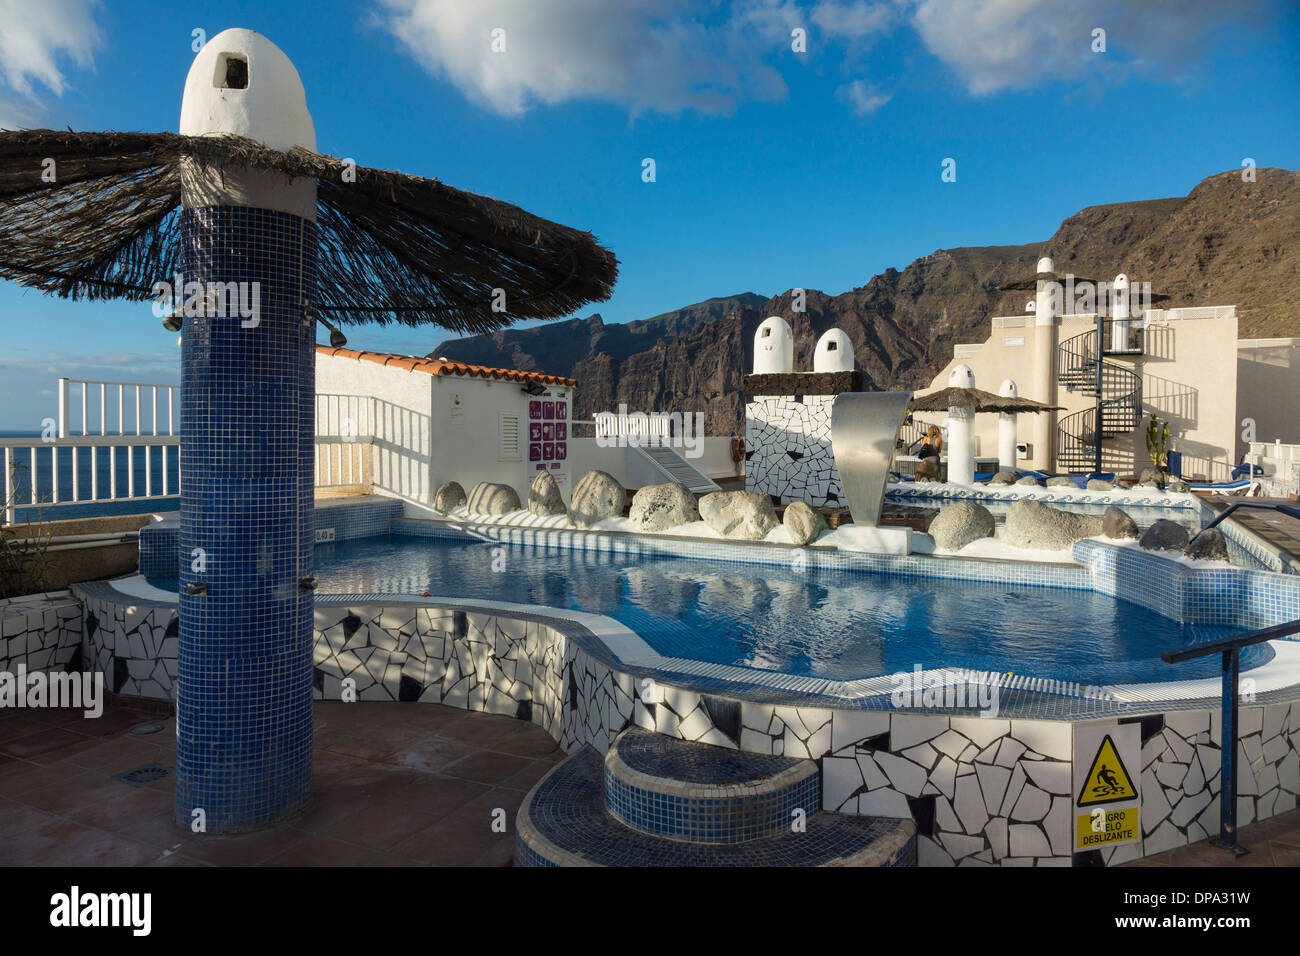 Tenerife, Canary Islands - rooftop swimming pool of Vigilia Park Stock Photo, Royalty Free Image ...